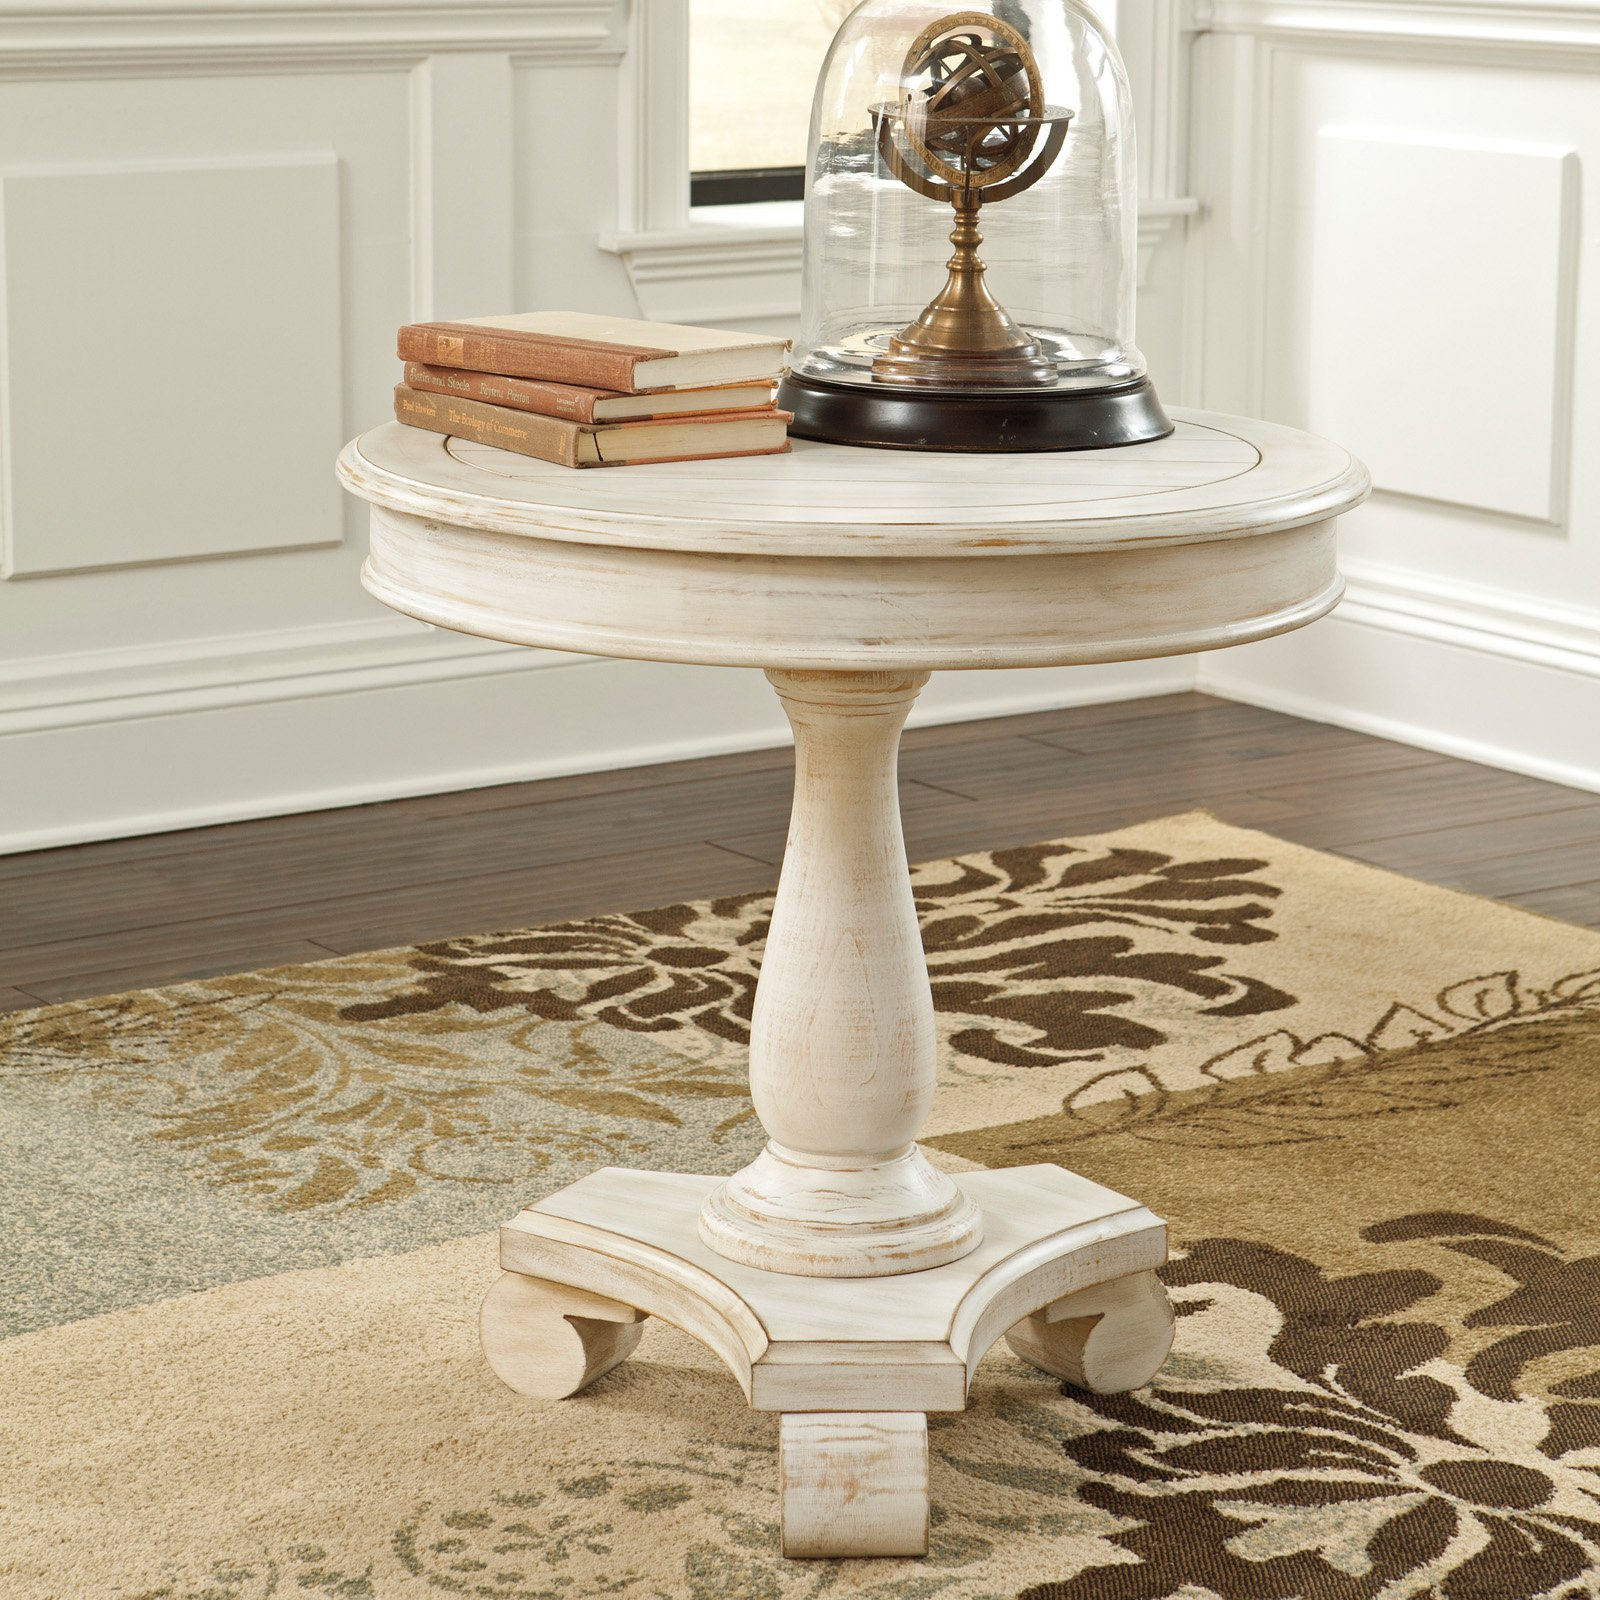 signature design ashley cottage accents white round accent table farmhouse martin home office furniture retro wood glass bedside units curved console nightstand set leather bean